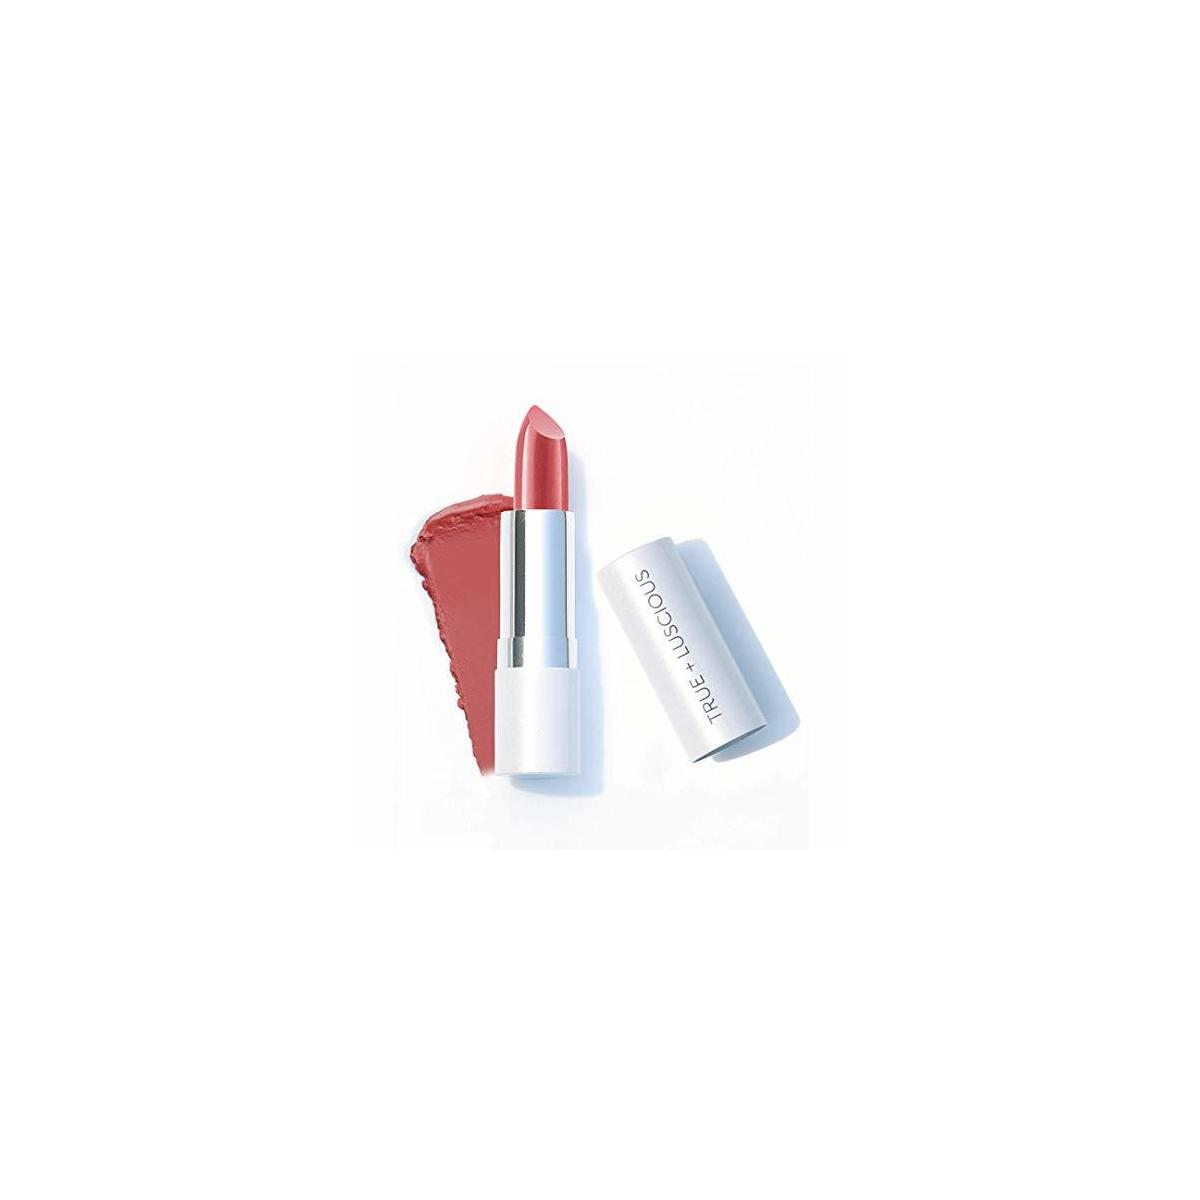 Super Moisture Lipstick by True + Luscious - Clean Formula, Smooth and Hydrating - Vegan and Cruelty Free Lipstick, Non Toxic and Lead Free Shade: Dreams - 0.12 oz